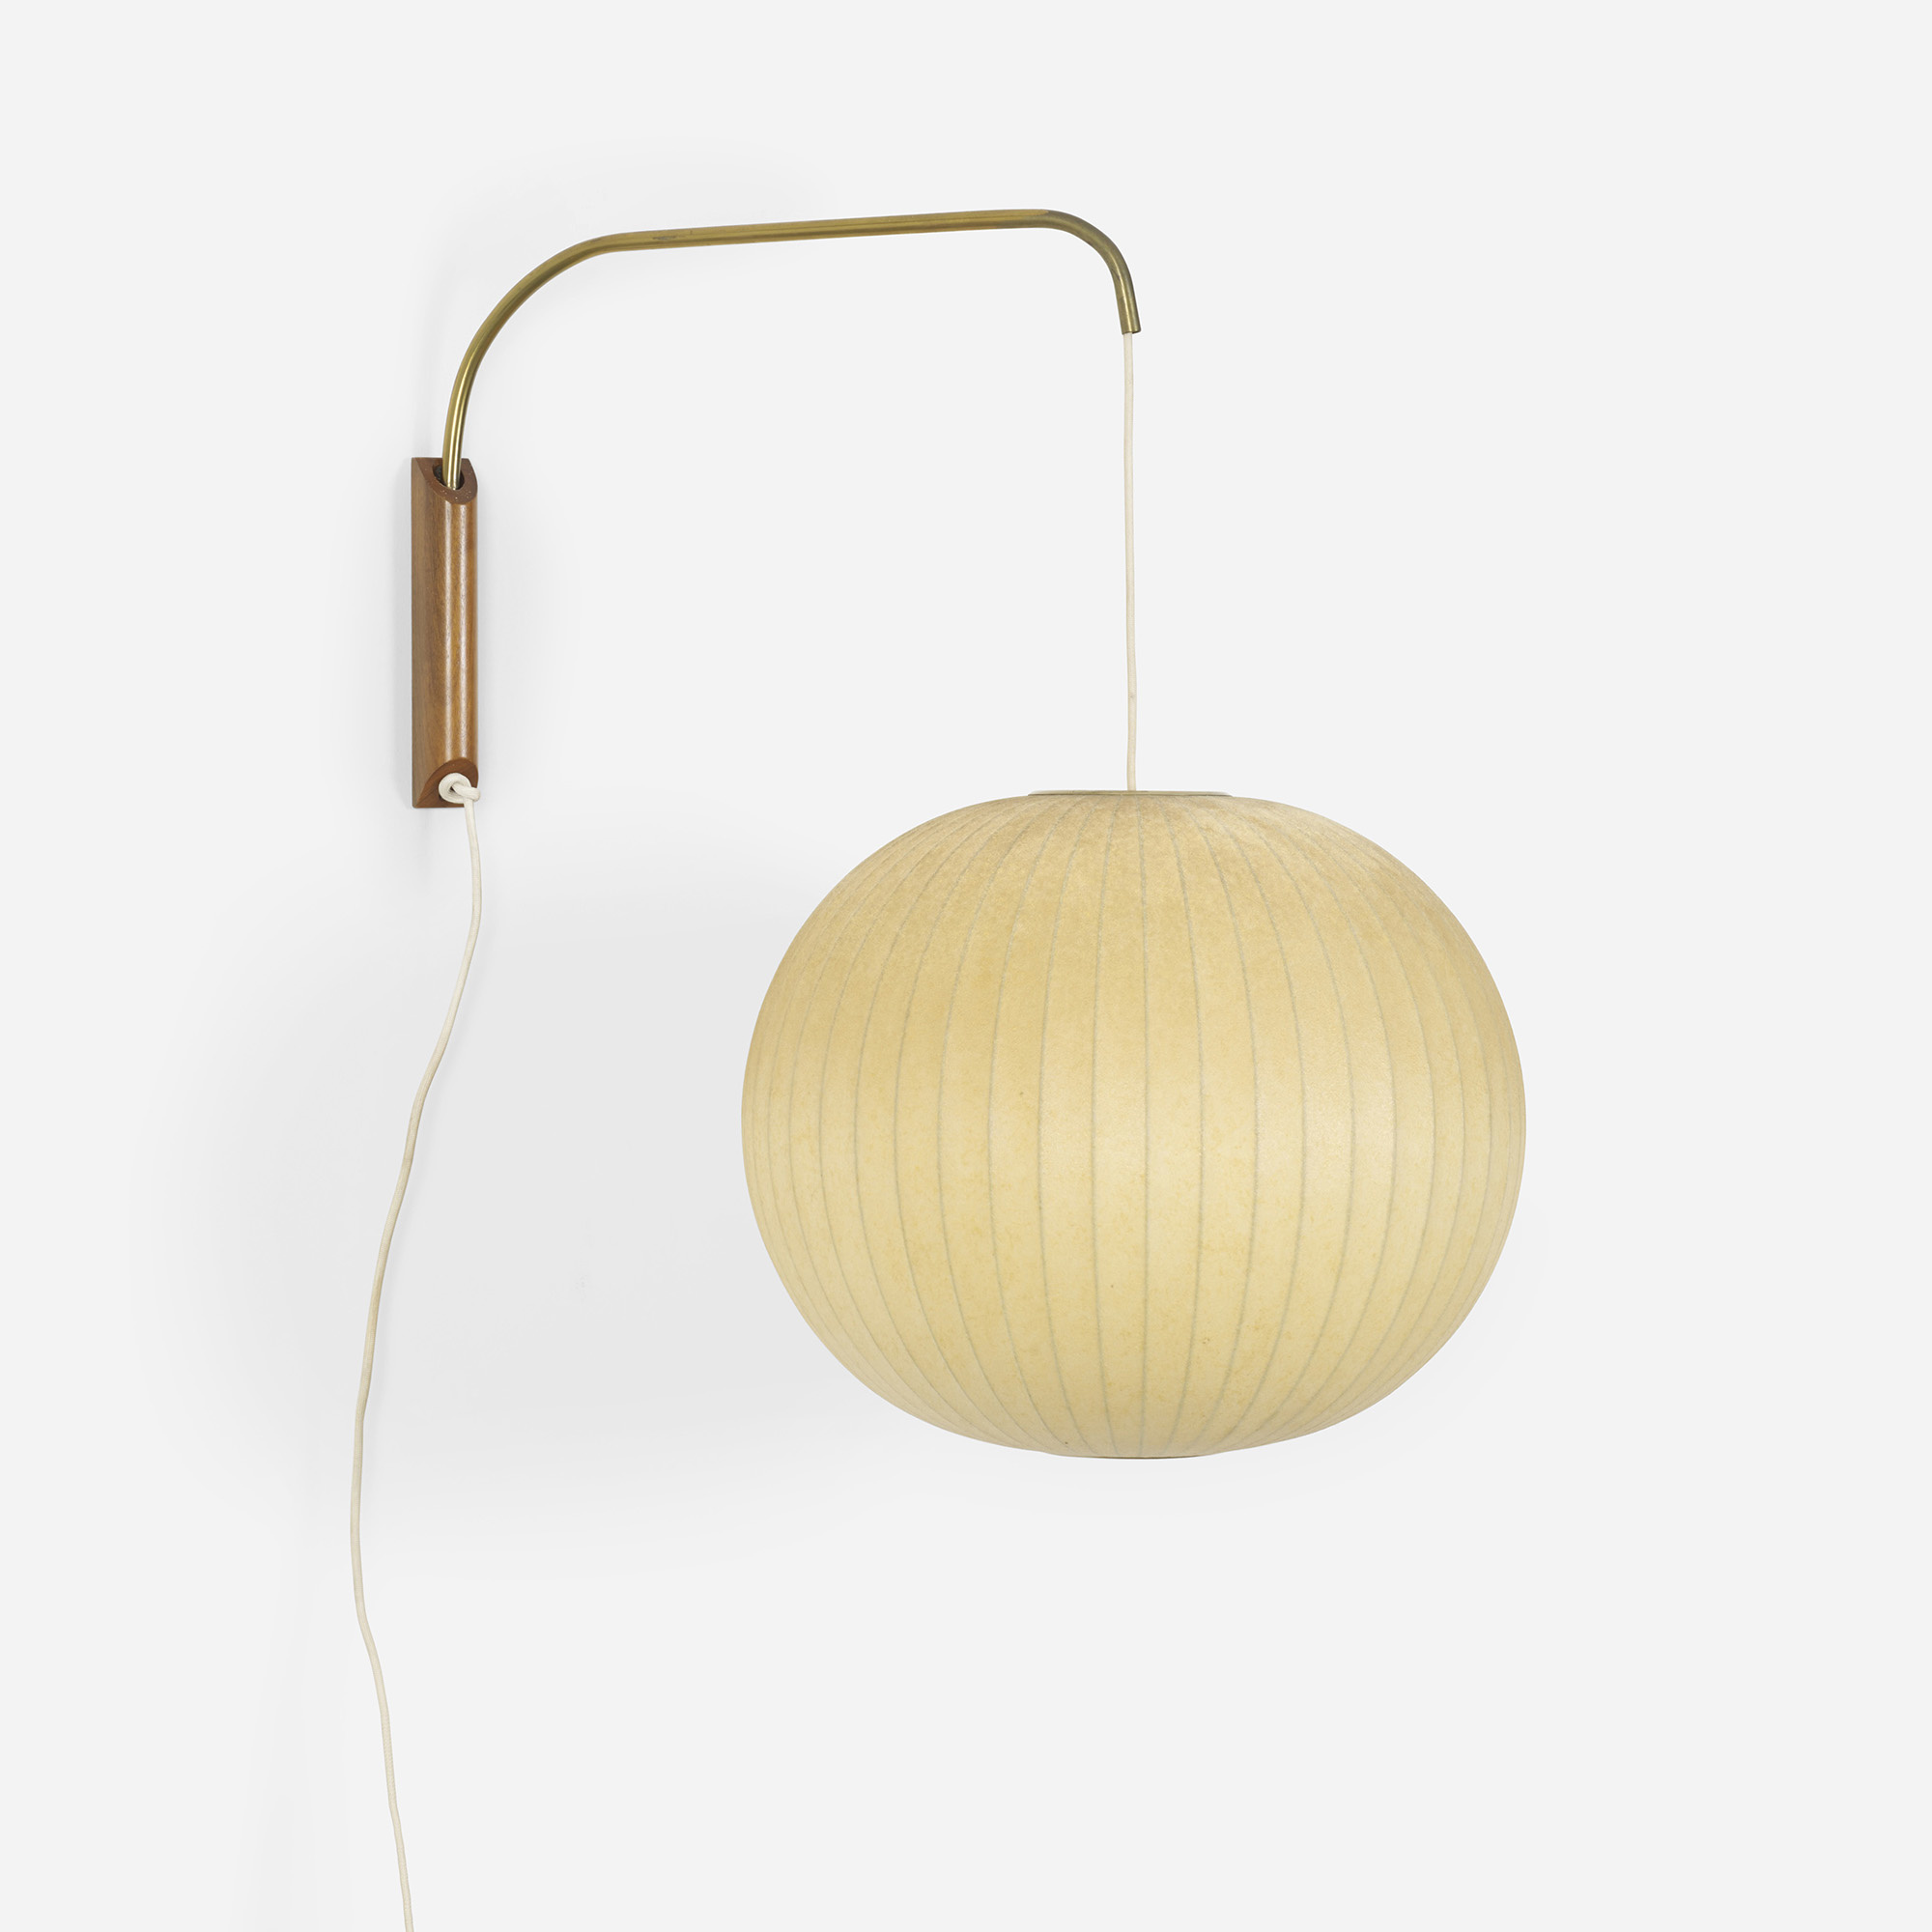 418 george nelson associates bubble wall lamp 1 of